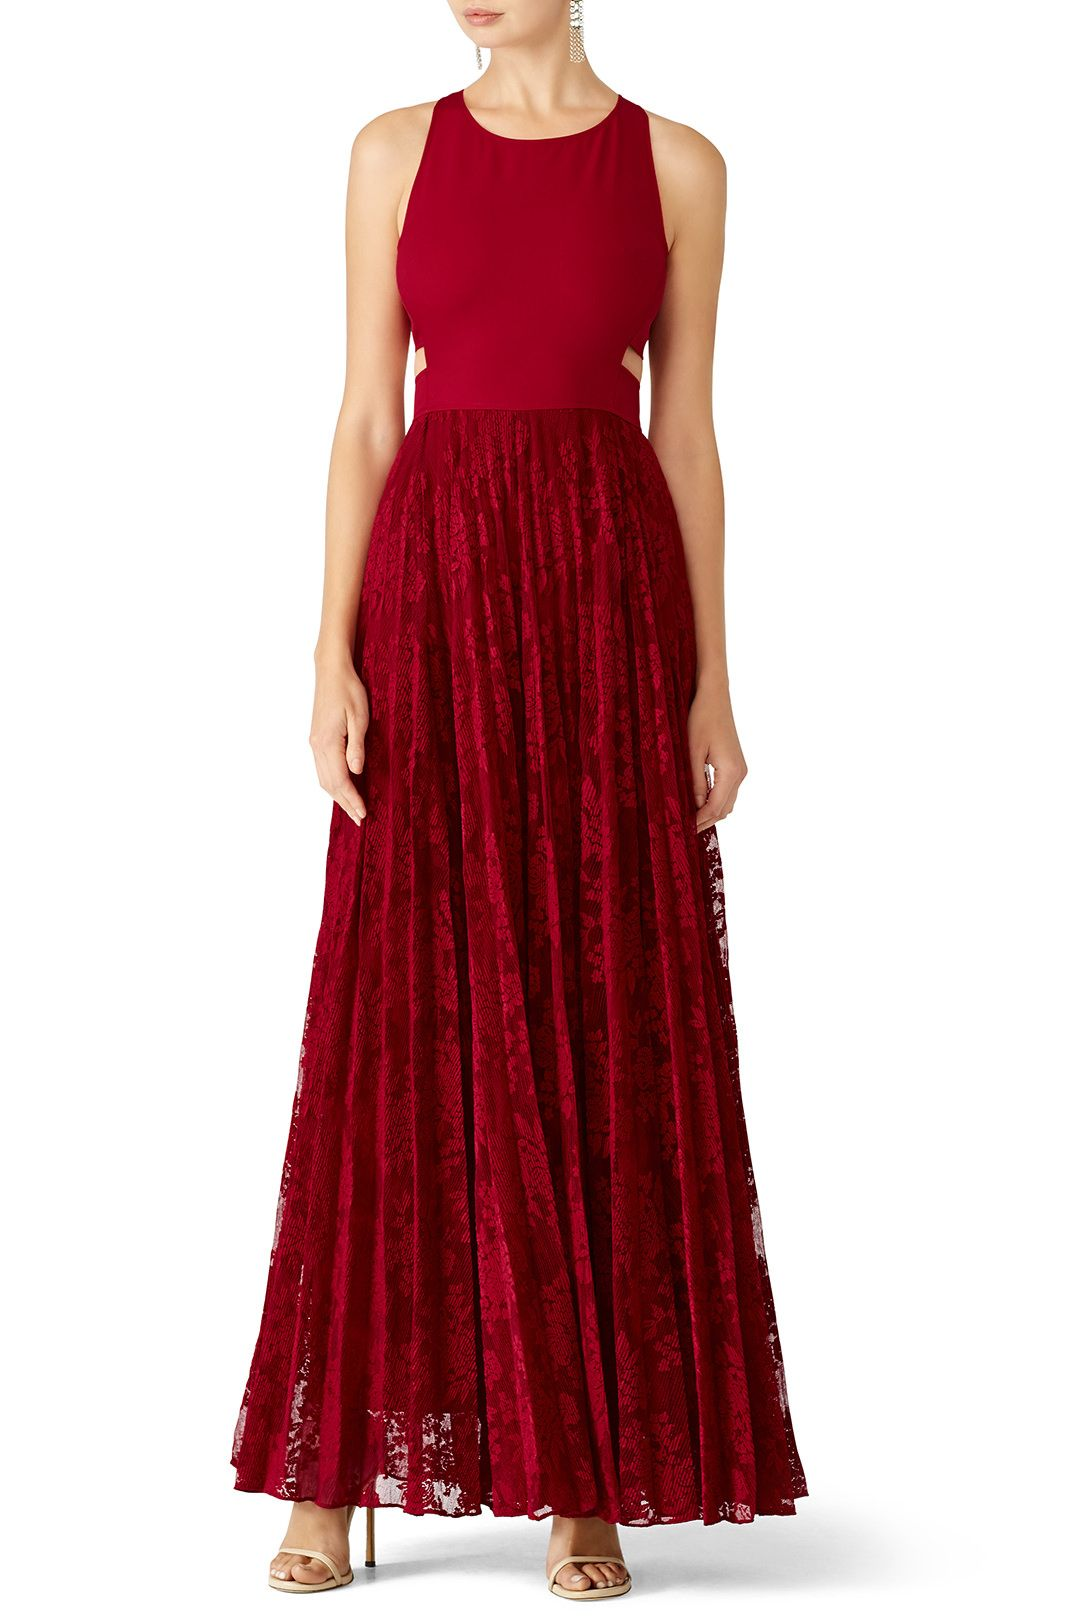 Red Cutout Gown | Bridal party dresses | Pinterest | Gowns, Designer ...